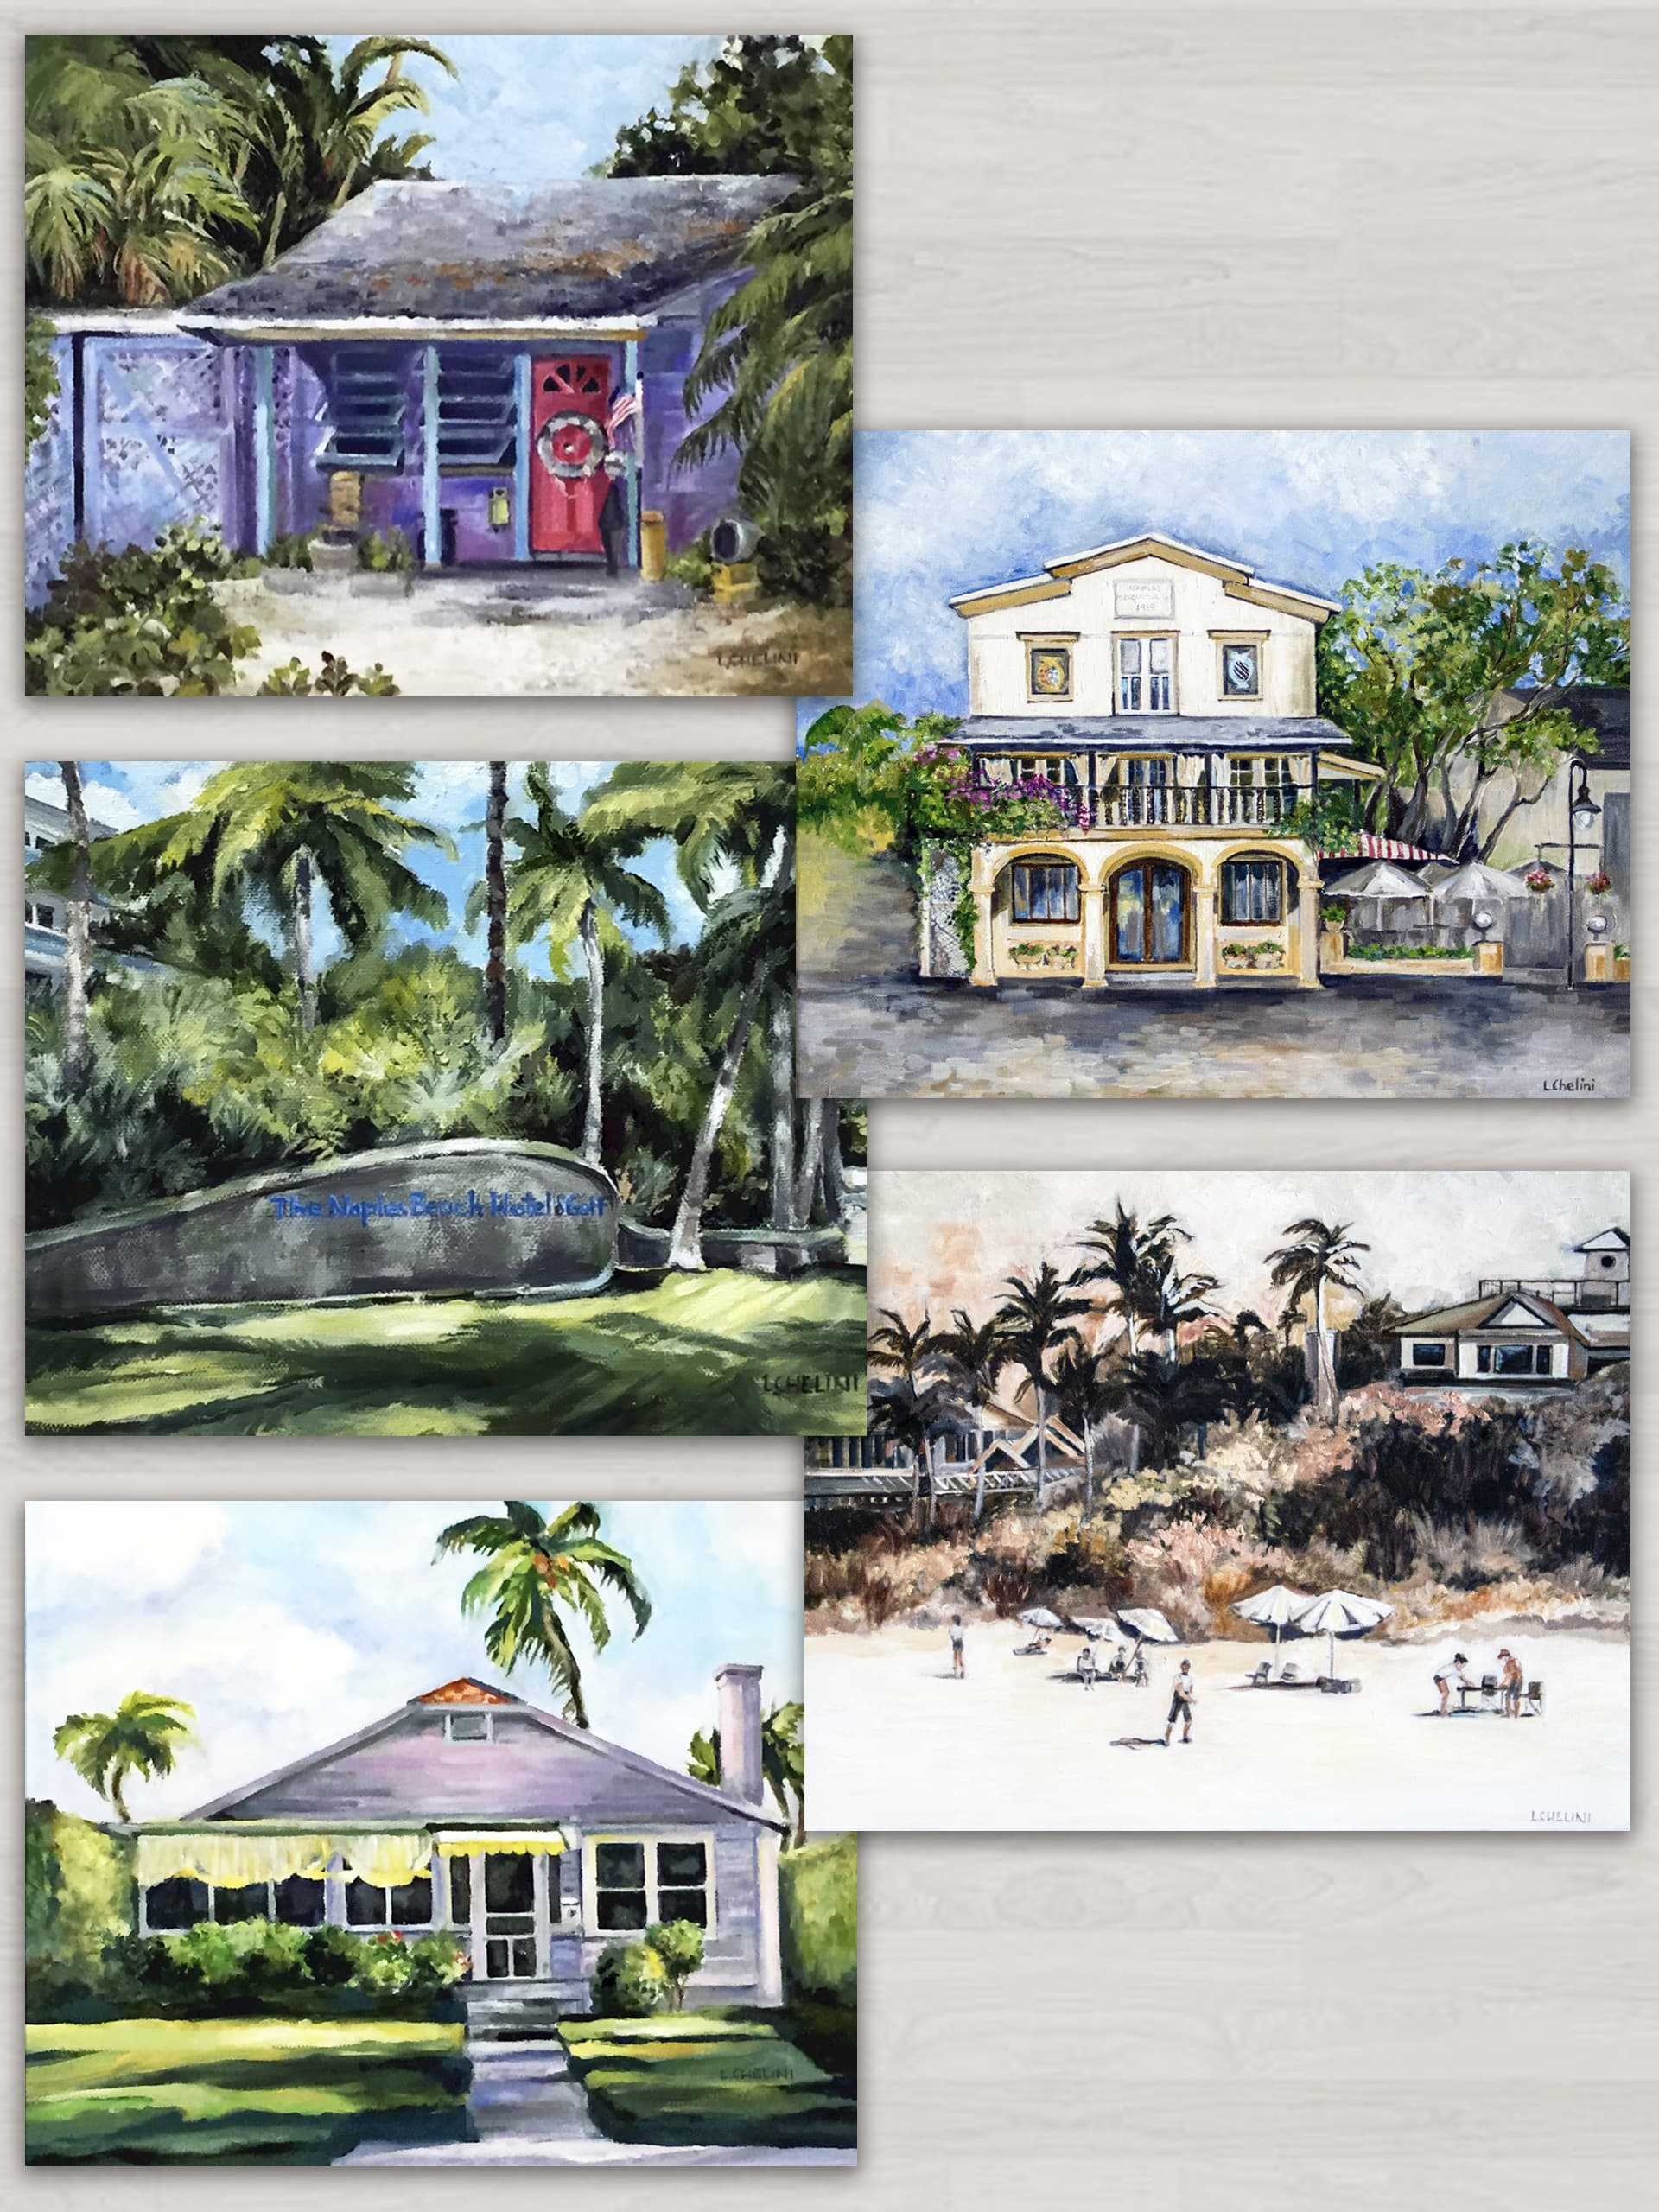 Beneath the Palms 5 notecard set by Laura Chelini